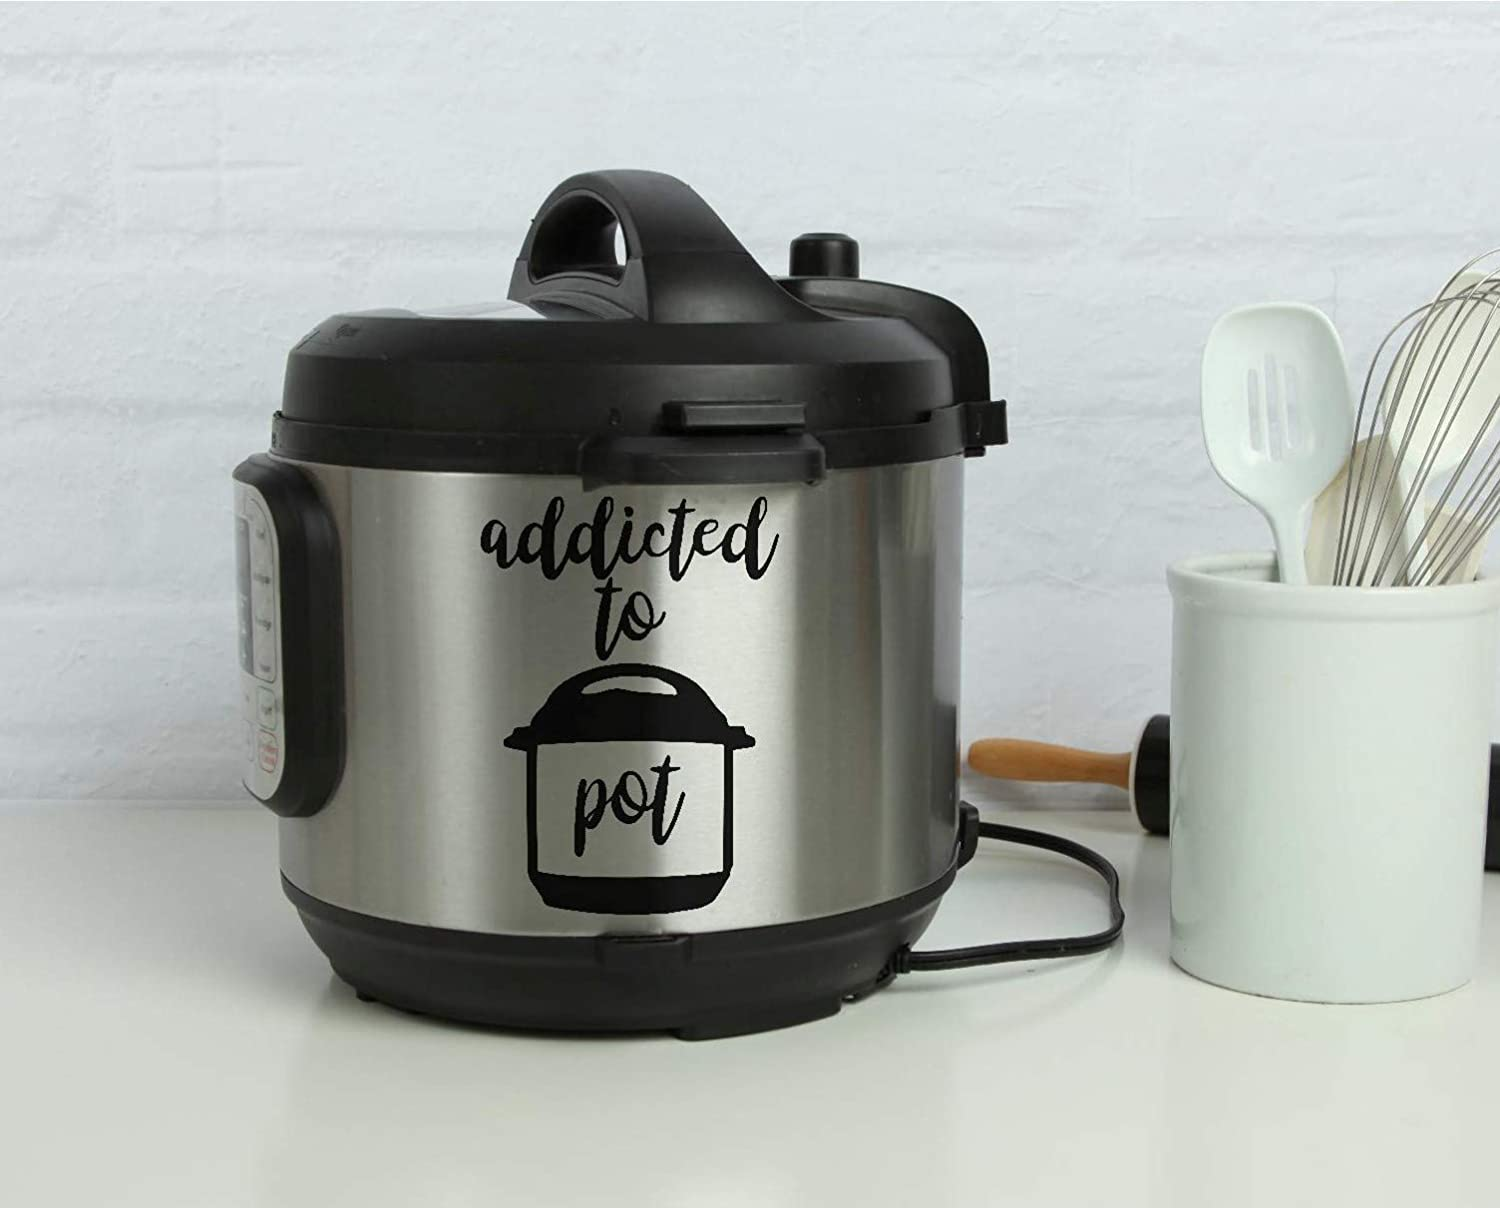 Addicted Pot pressure cooker decal pot head kitchen decoration gift for her Christmas gift